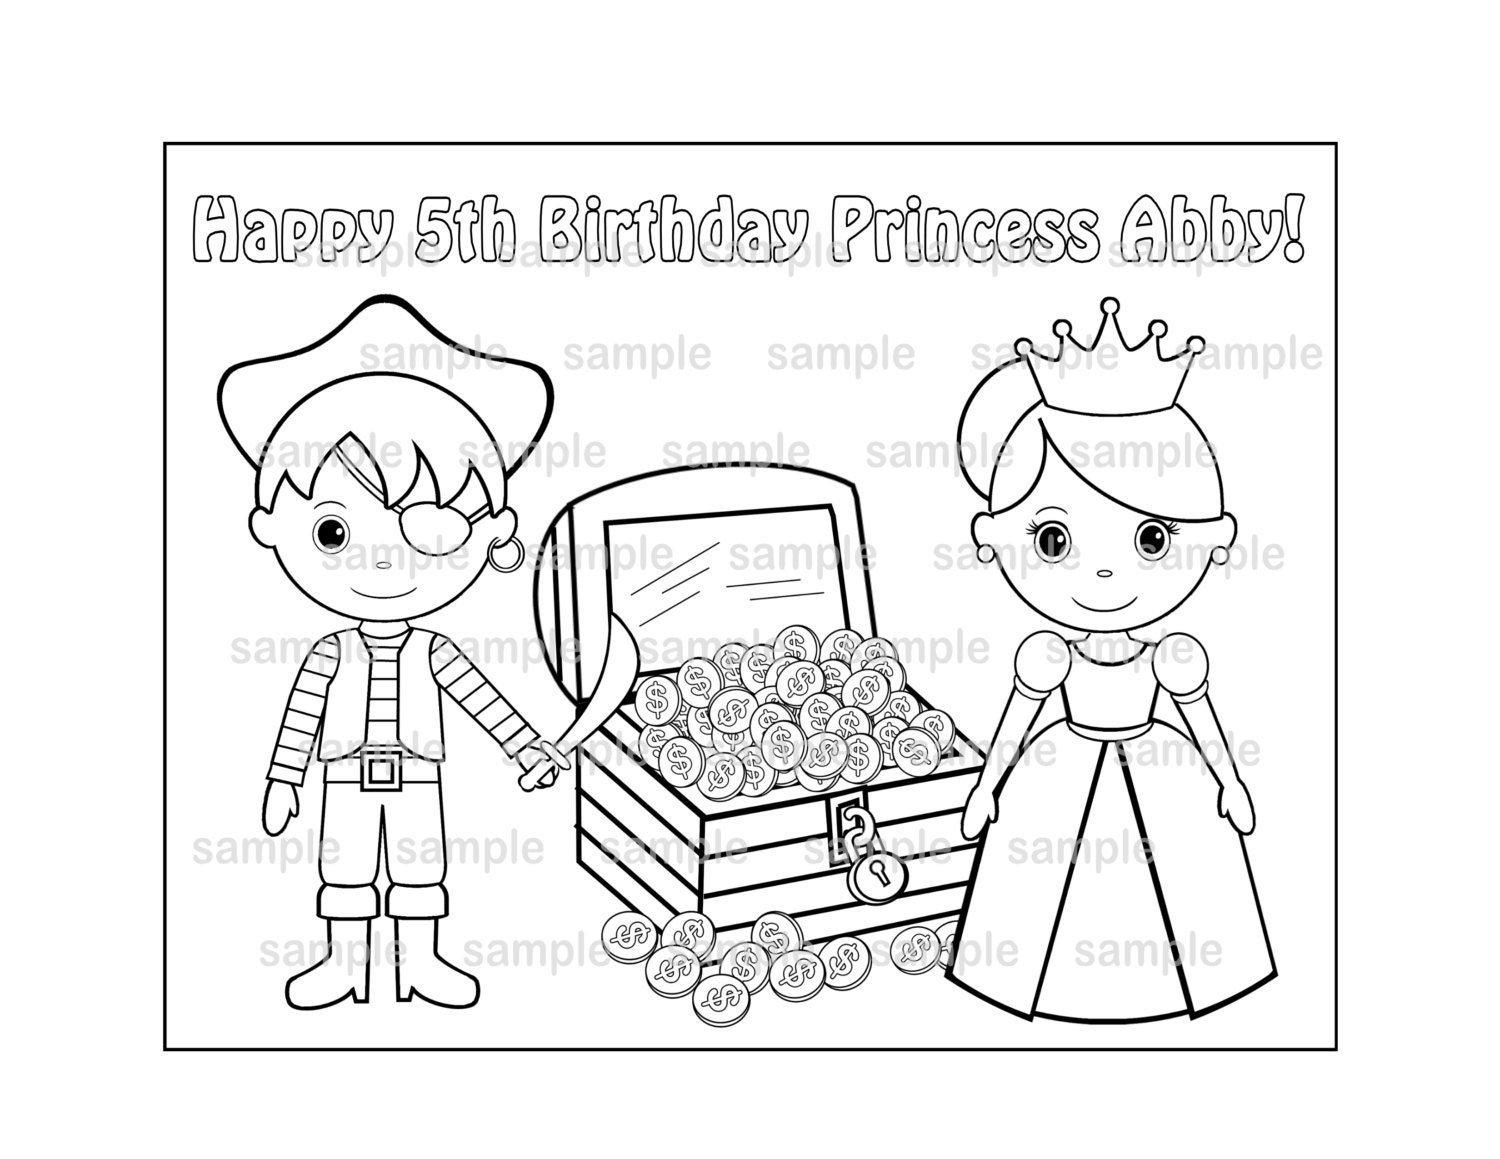 personalized printable princess and pirate birthday party